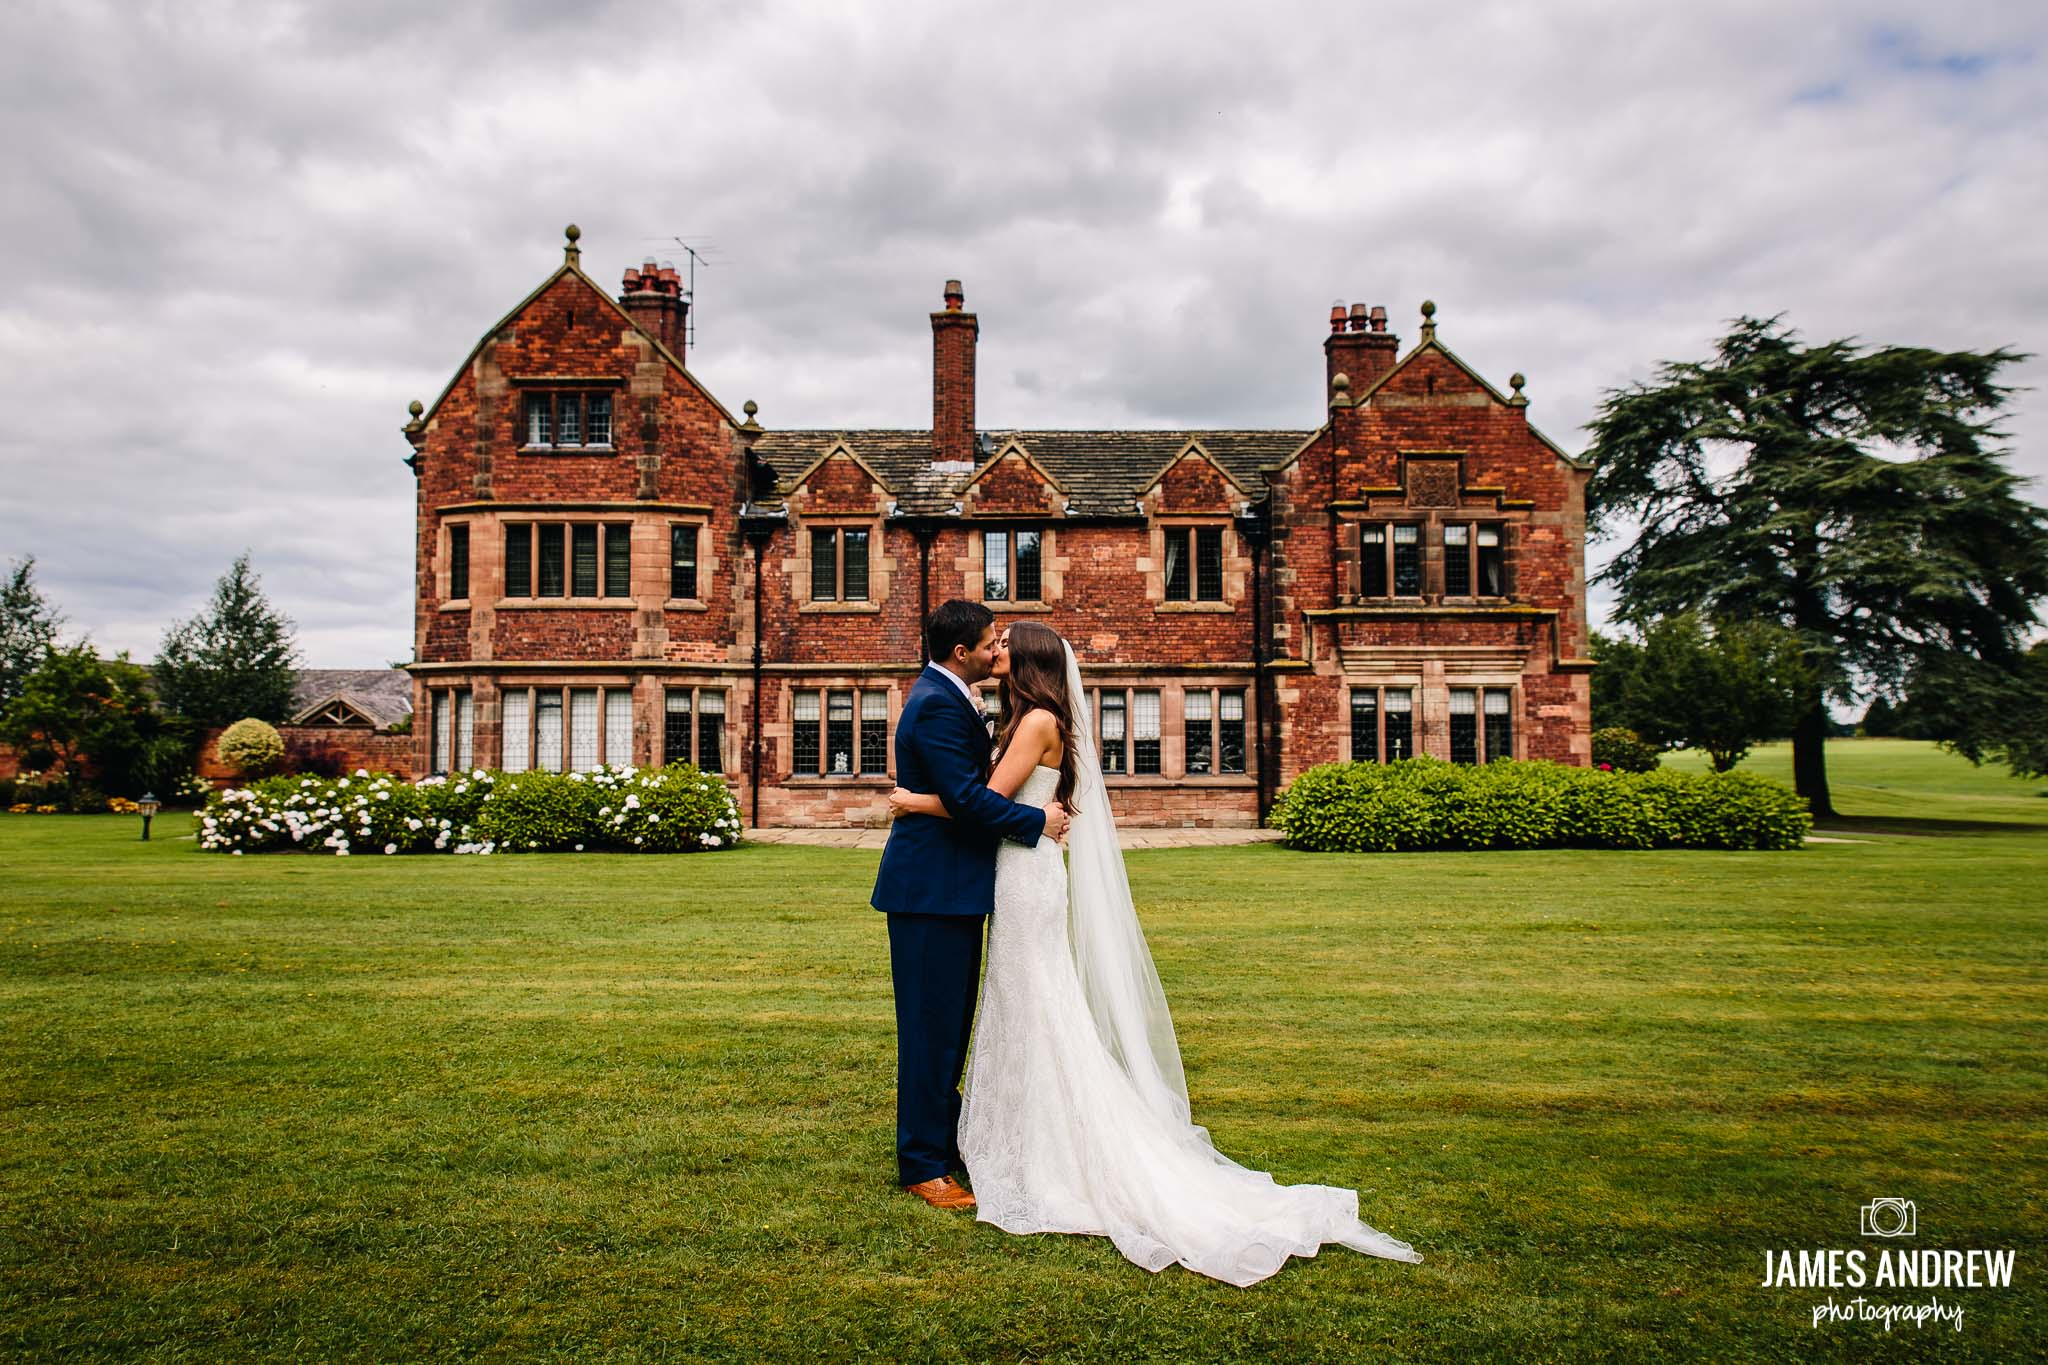 Colshaw Hall Bride And Groom Portrait in front of statley home manor house